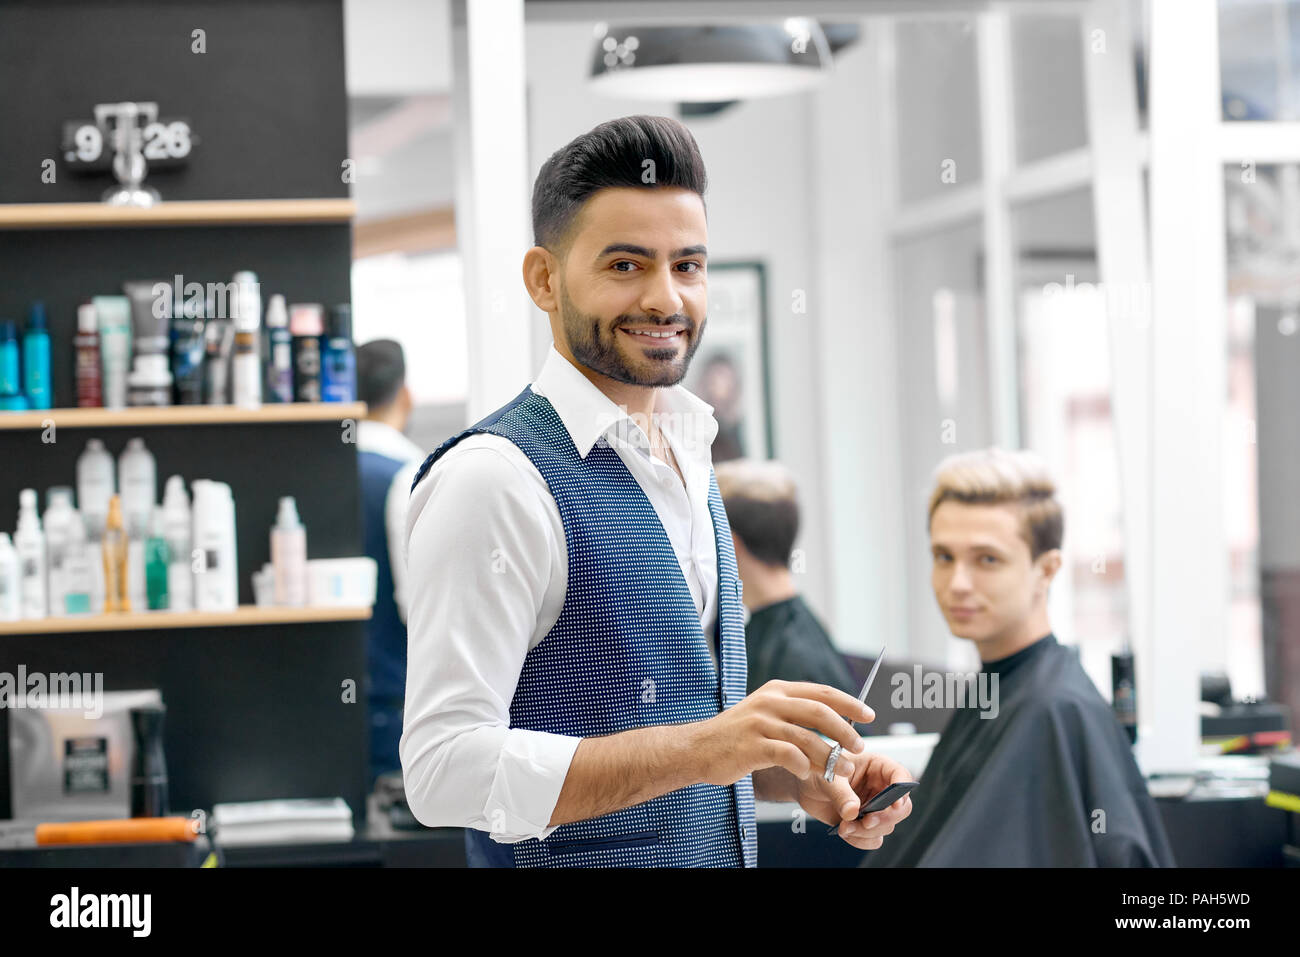 Smiling barber standing near client sitting near mirror, looking at camera. Wearing casual white shirt, stylish grey waistcoat. Posing in front of shelves with hair care products. Feeling positive. - Stock Image